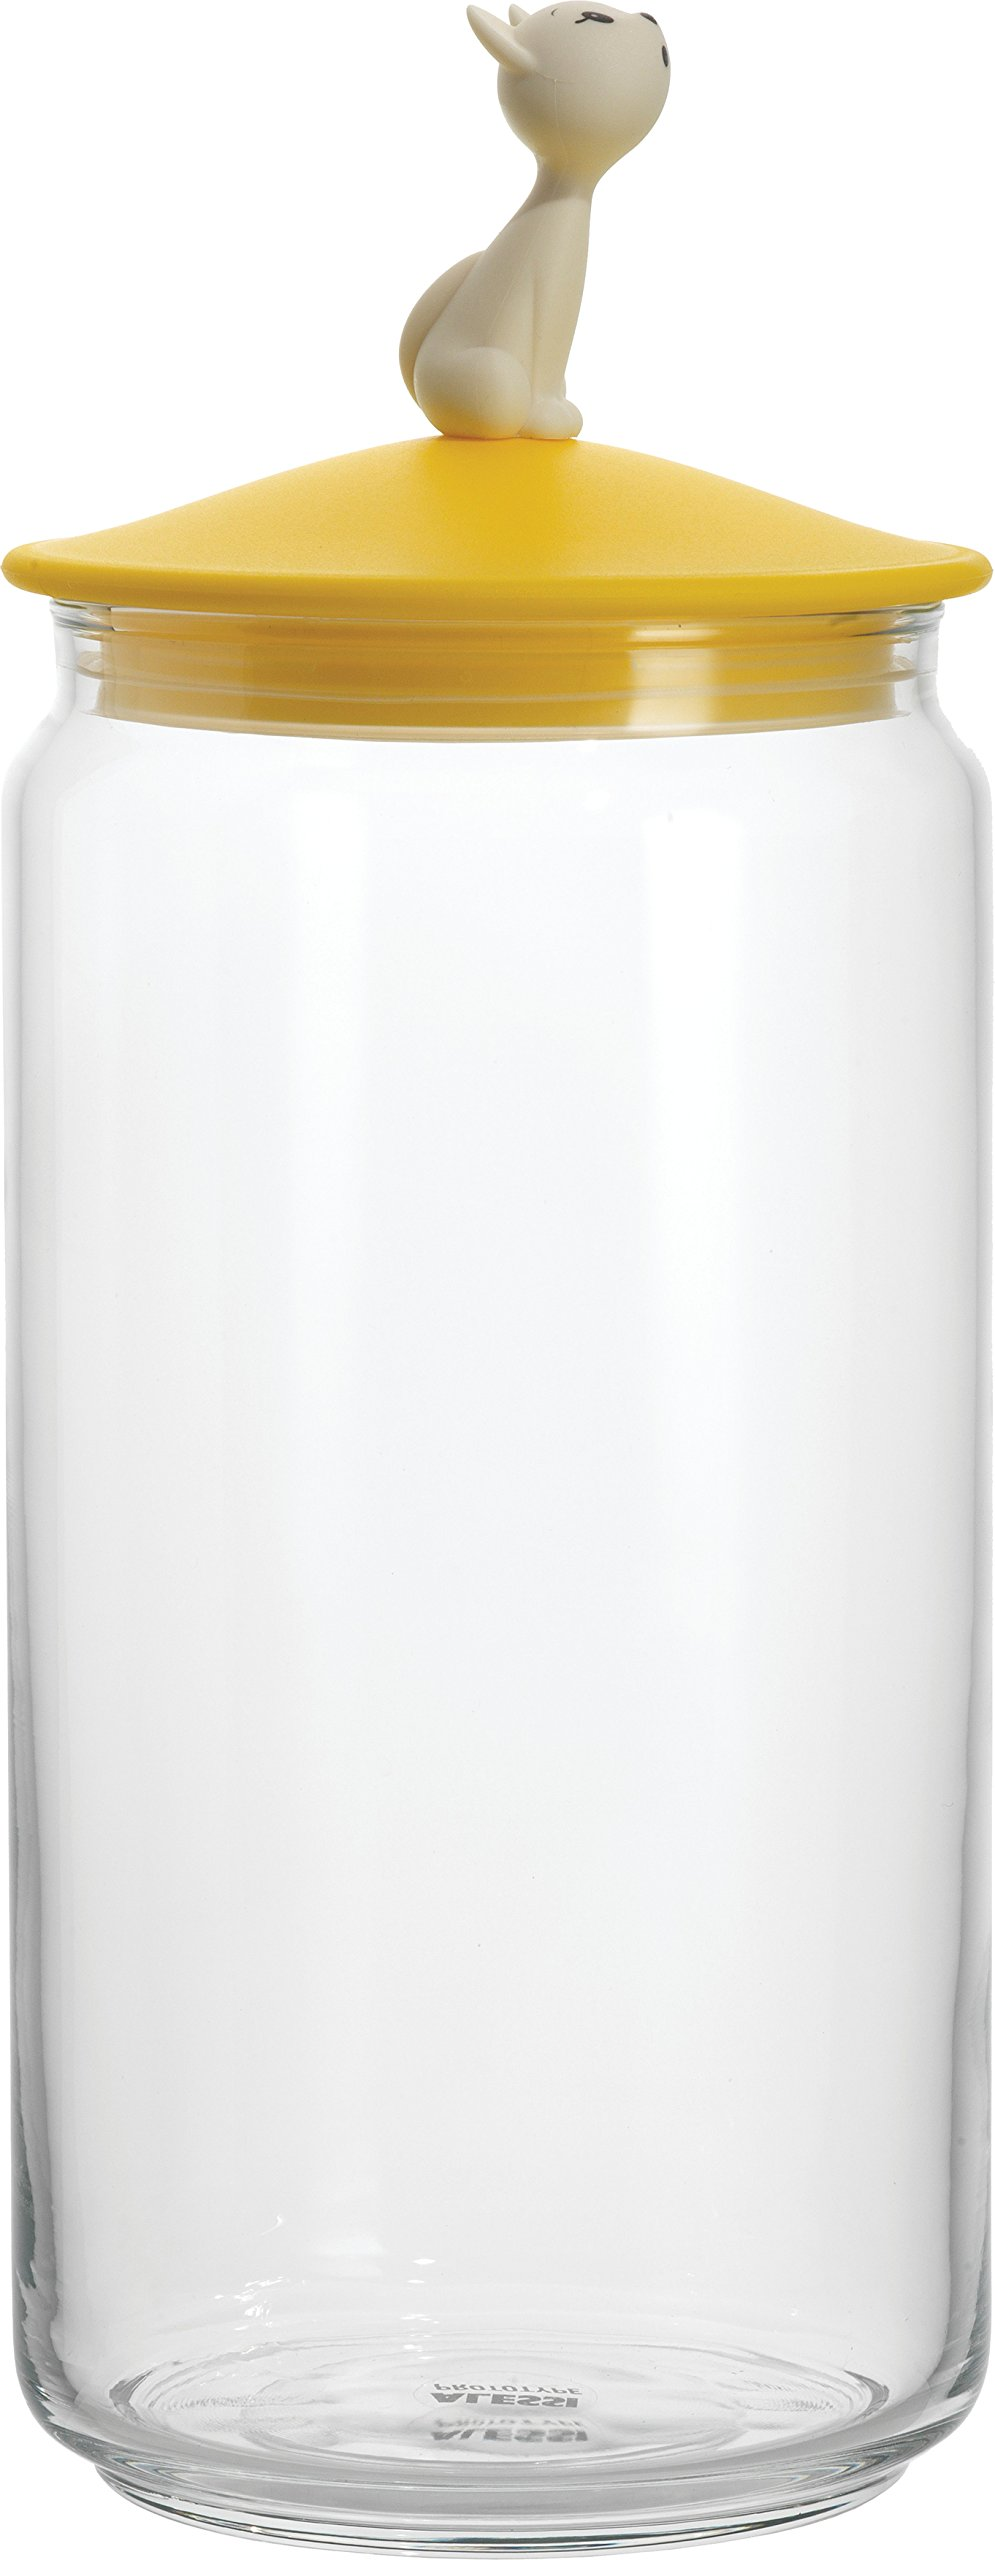 Alessi AMMI22 Y Mio' Jar Container, yellow, yellow